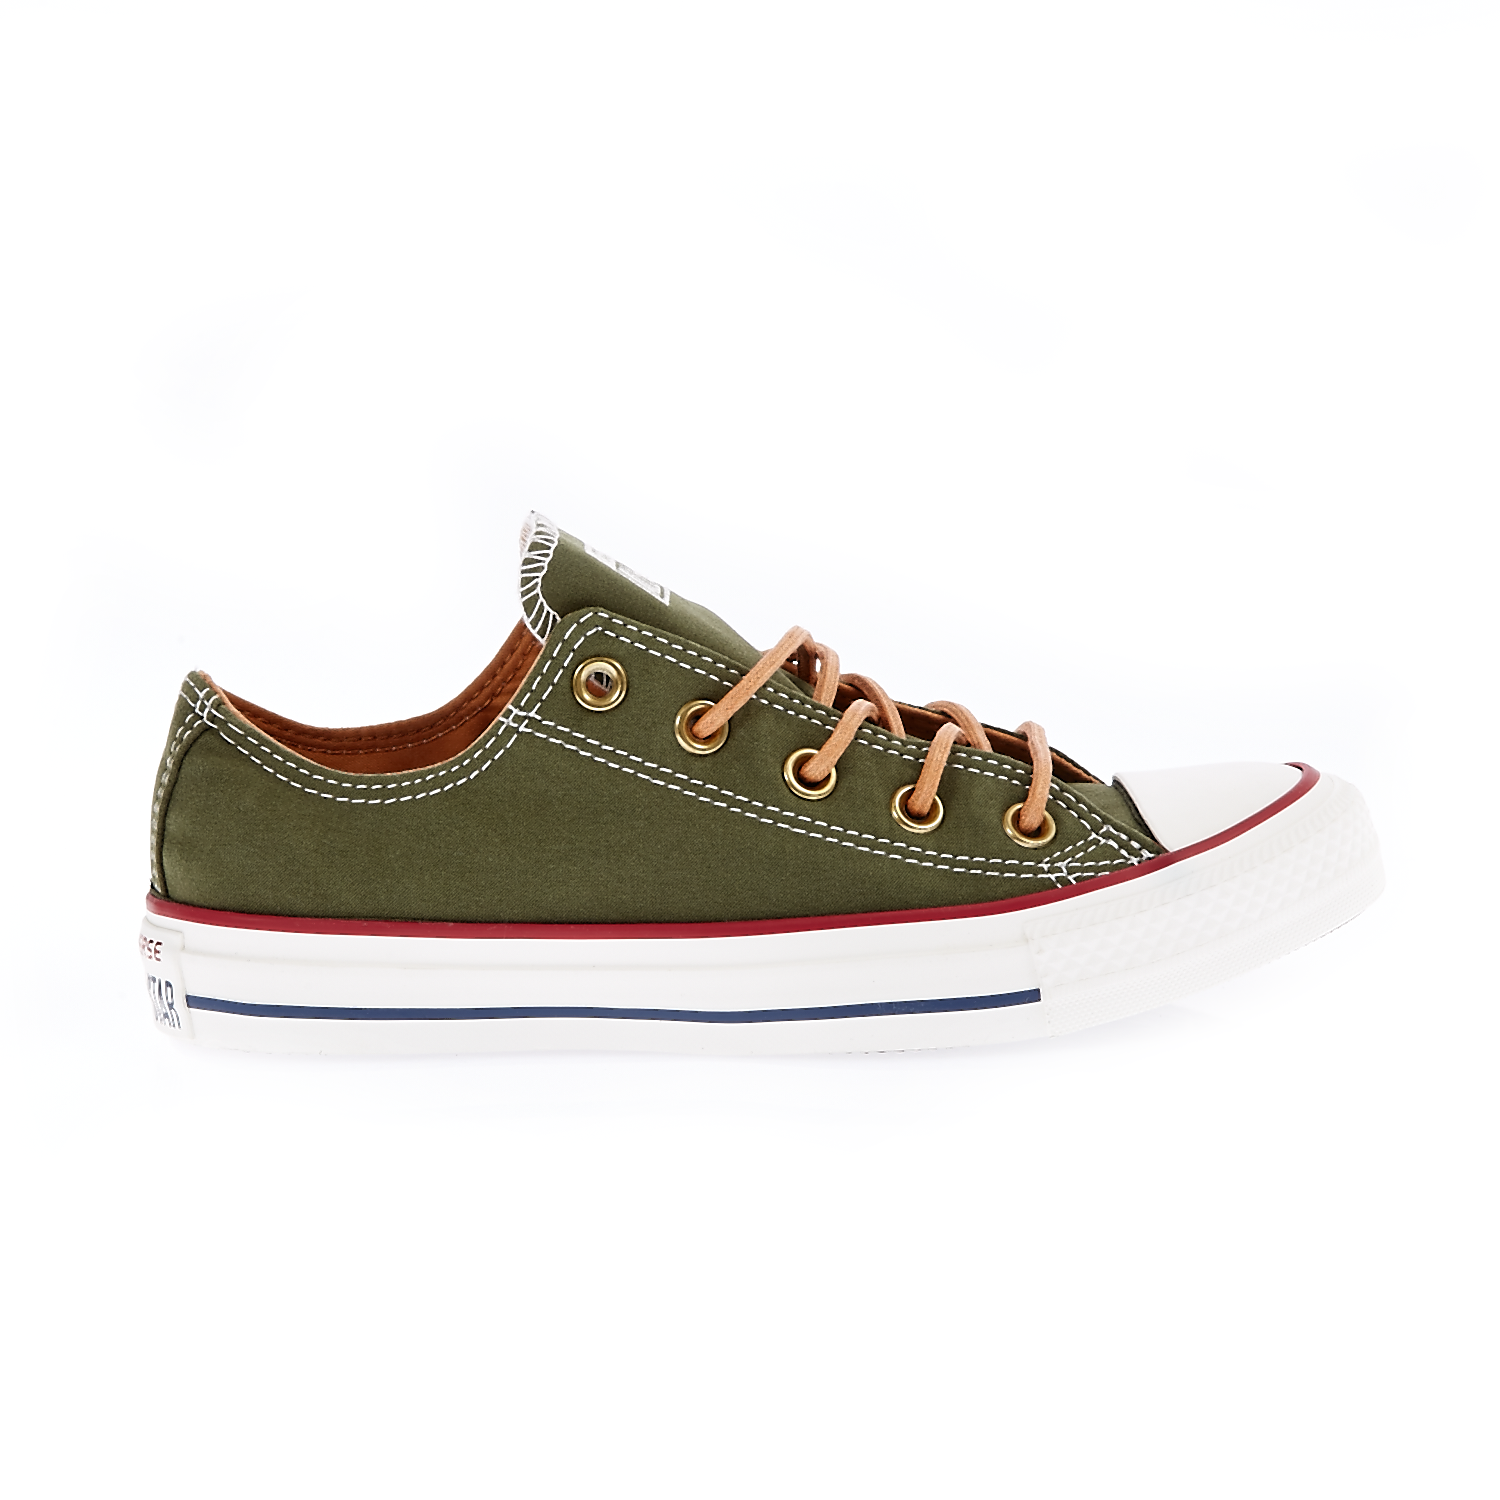 b96a7b38bee CONVERSE - Unisex παπούτσια Chuck Taylor All Star Ox λαδί-χακί